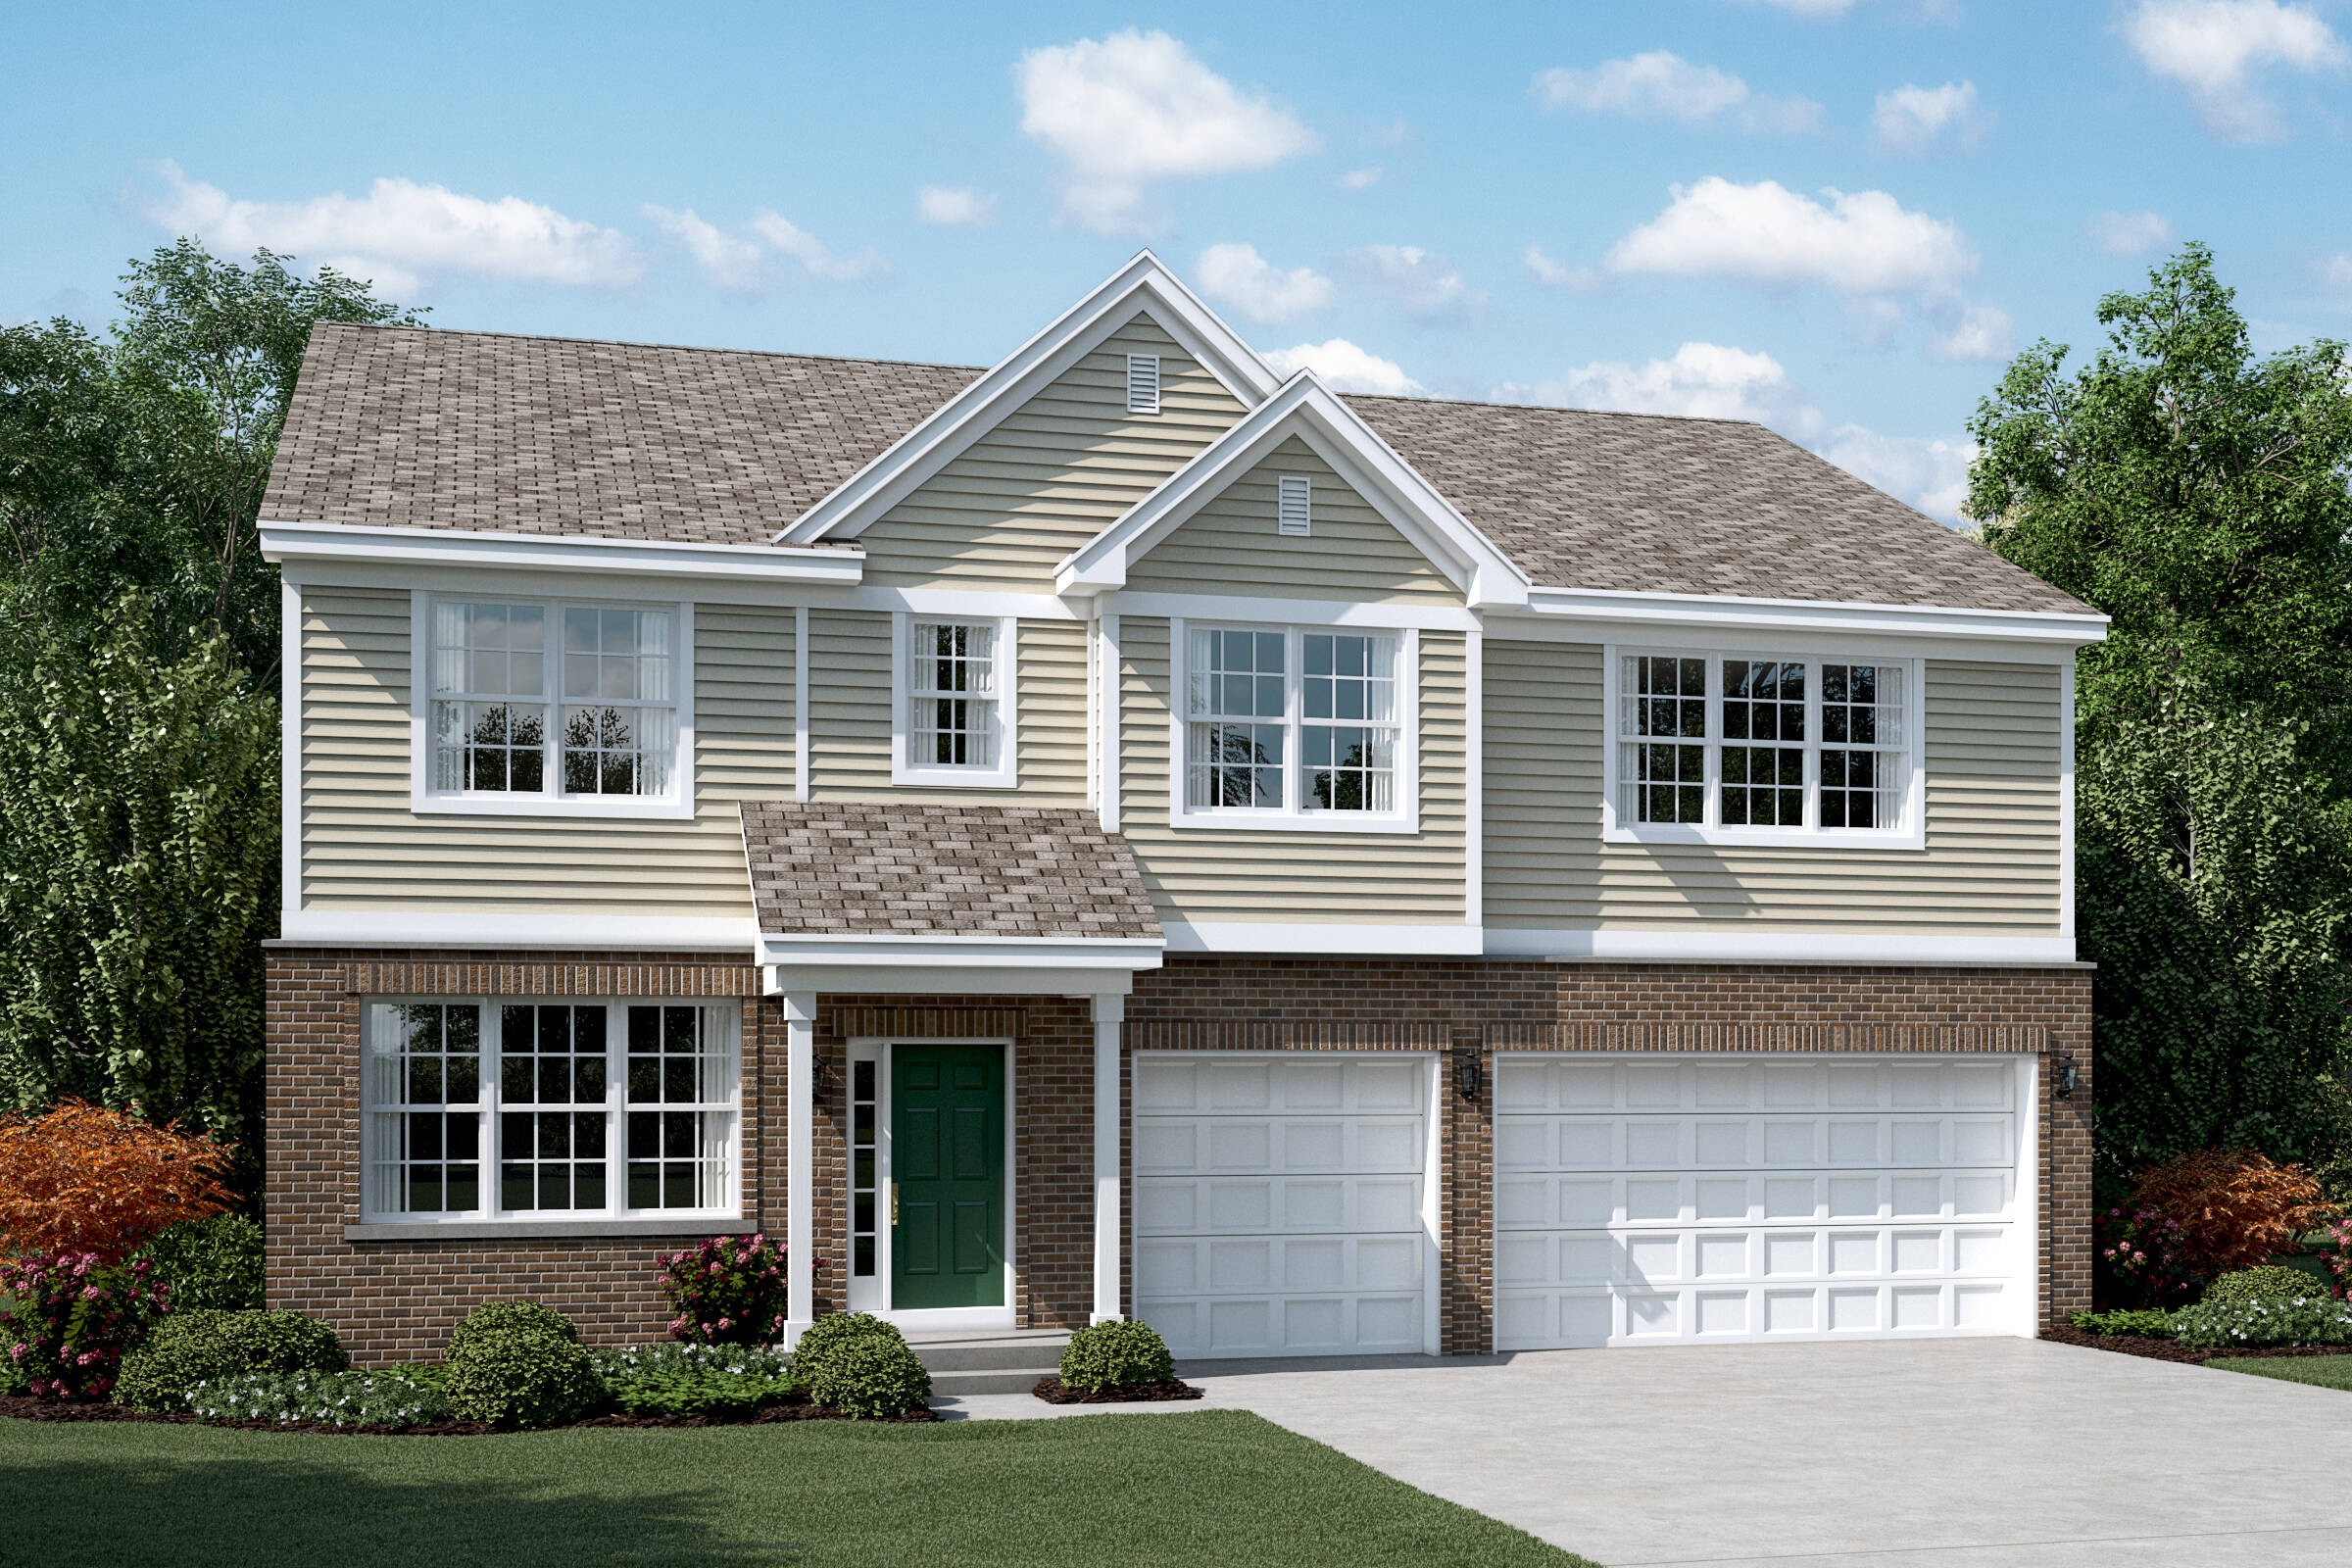 yorkshire ab new homes manhattan illinois